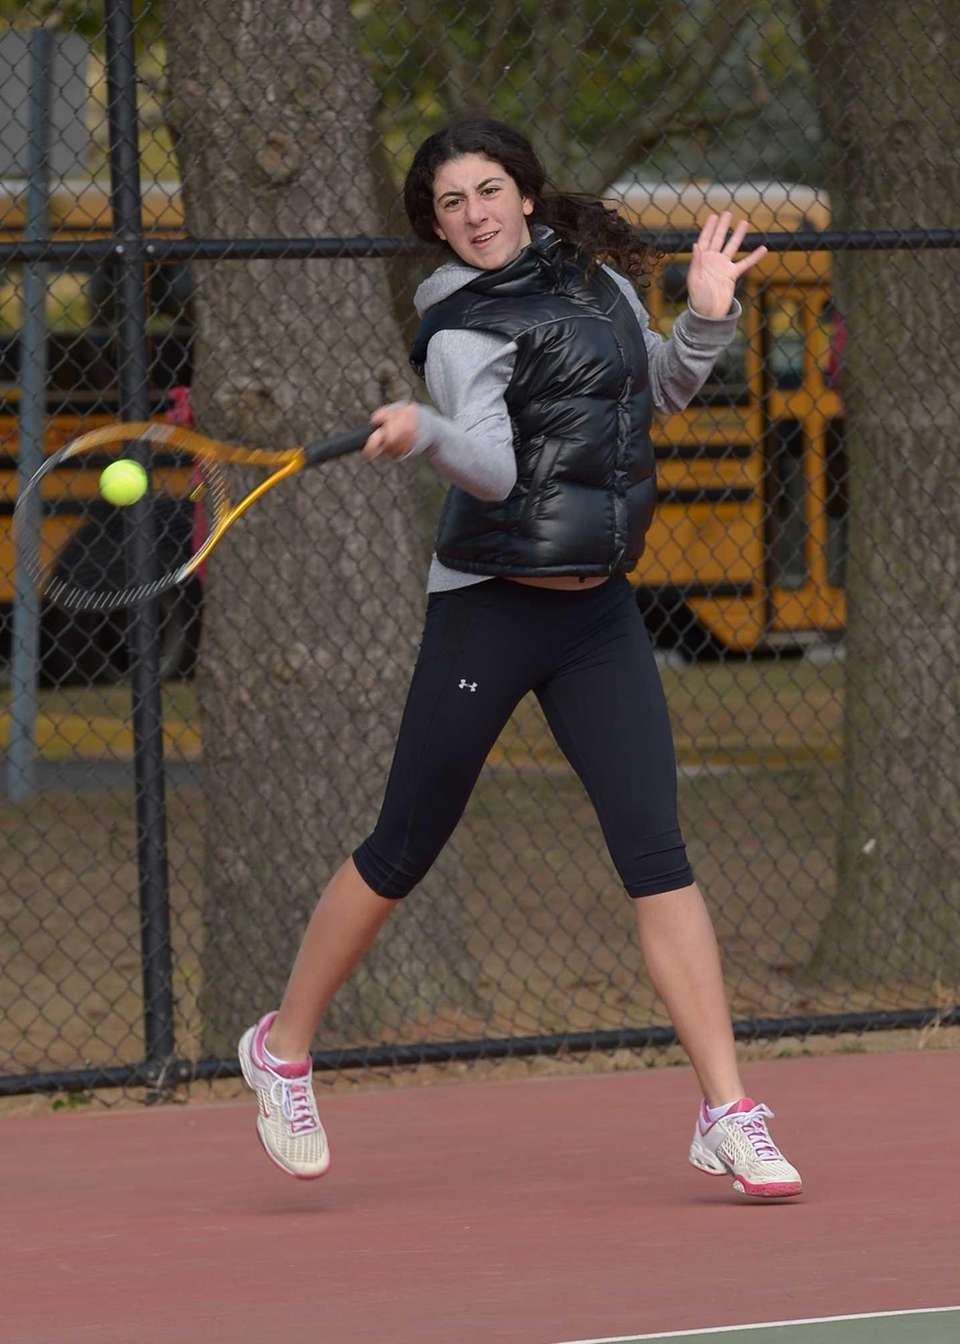 Ester Chikvashvili of Hills East returns the serve